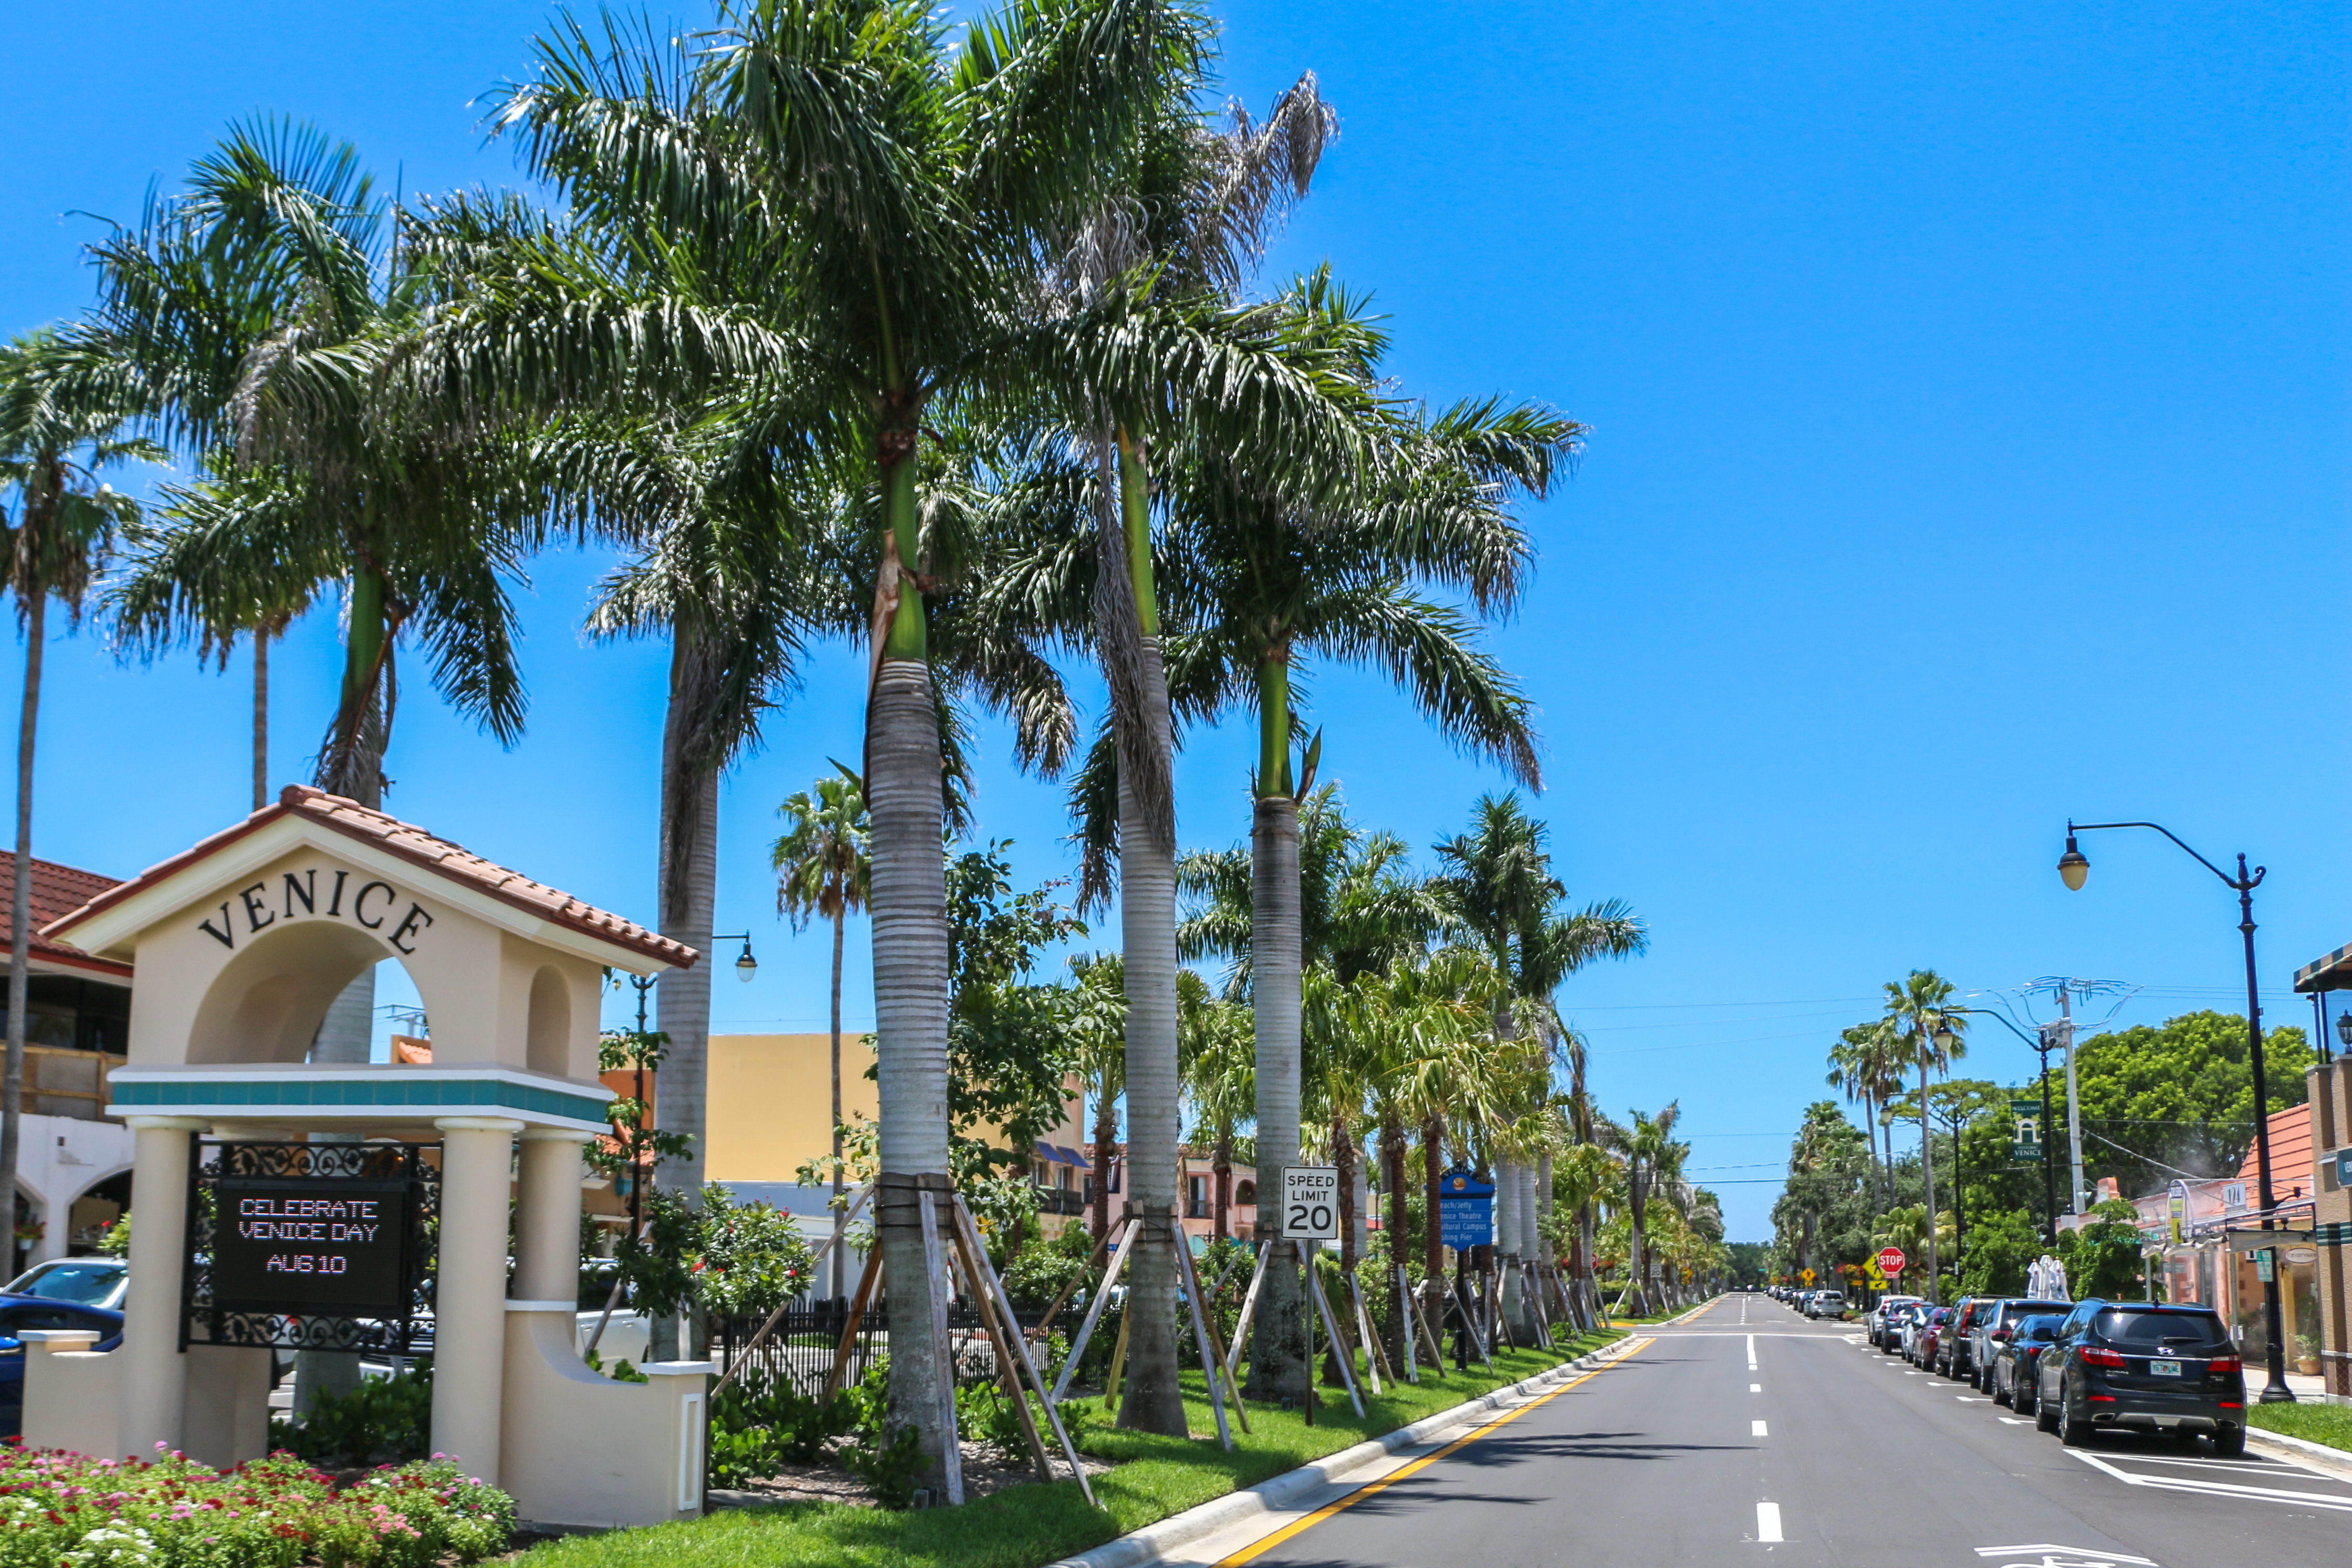 street view of downtown venice florida